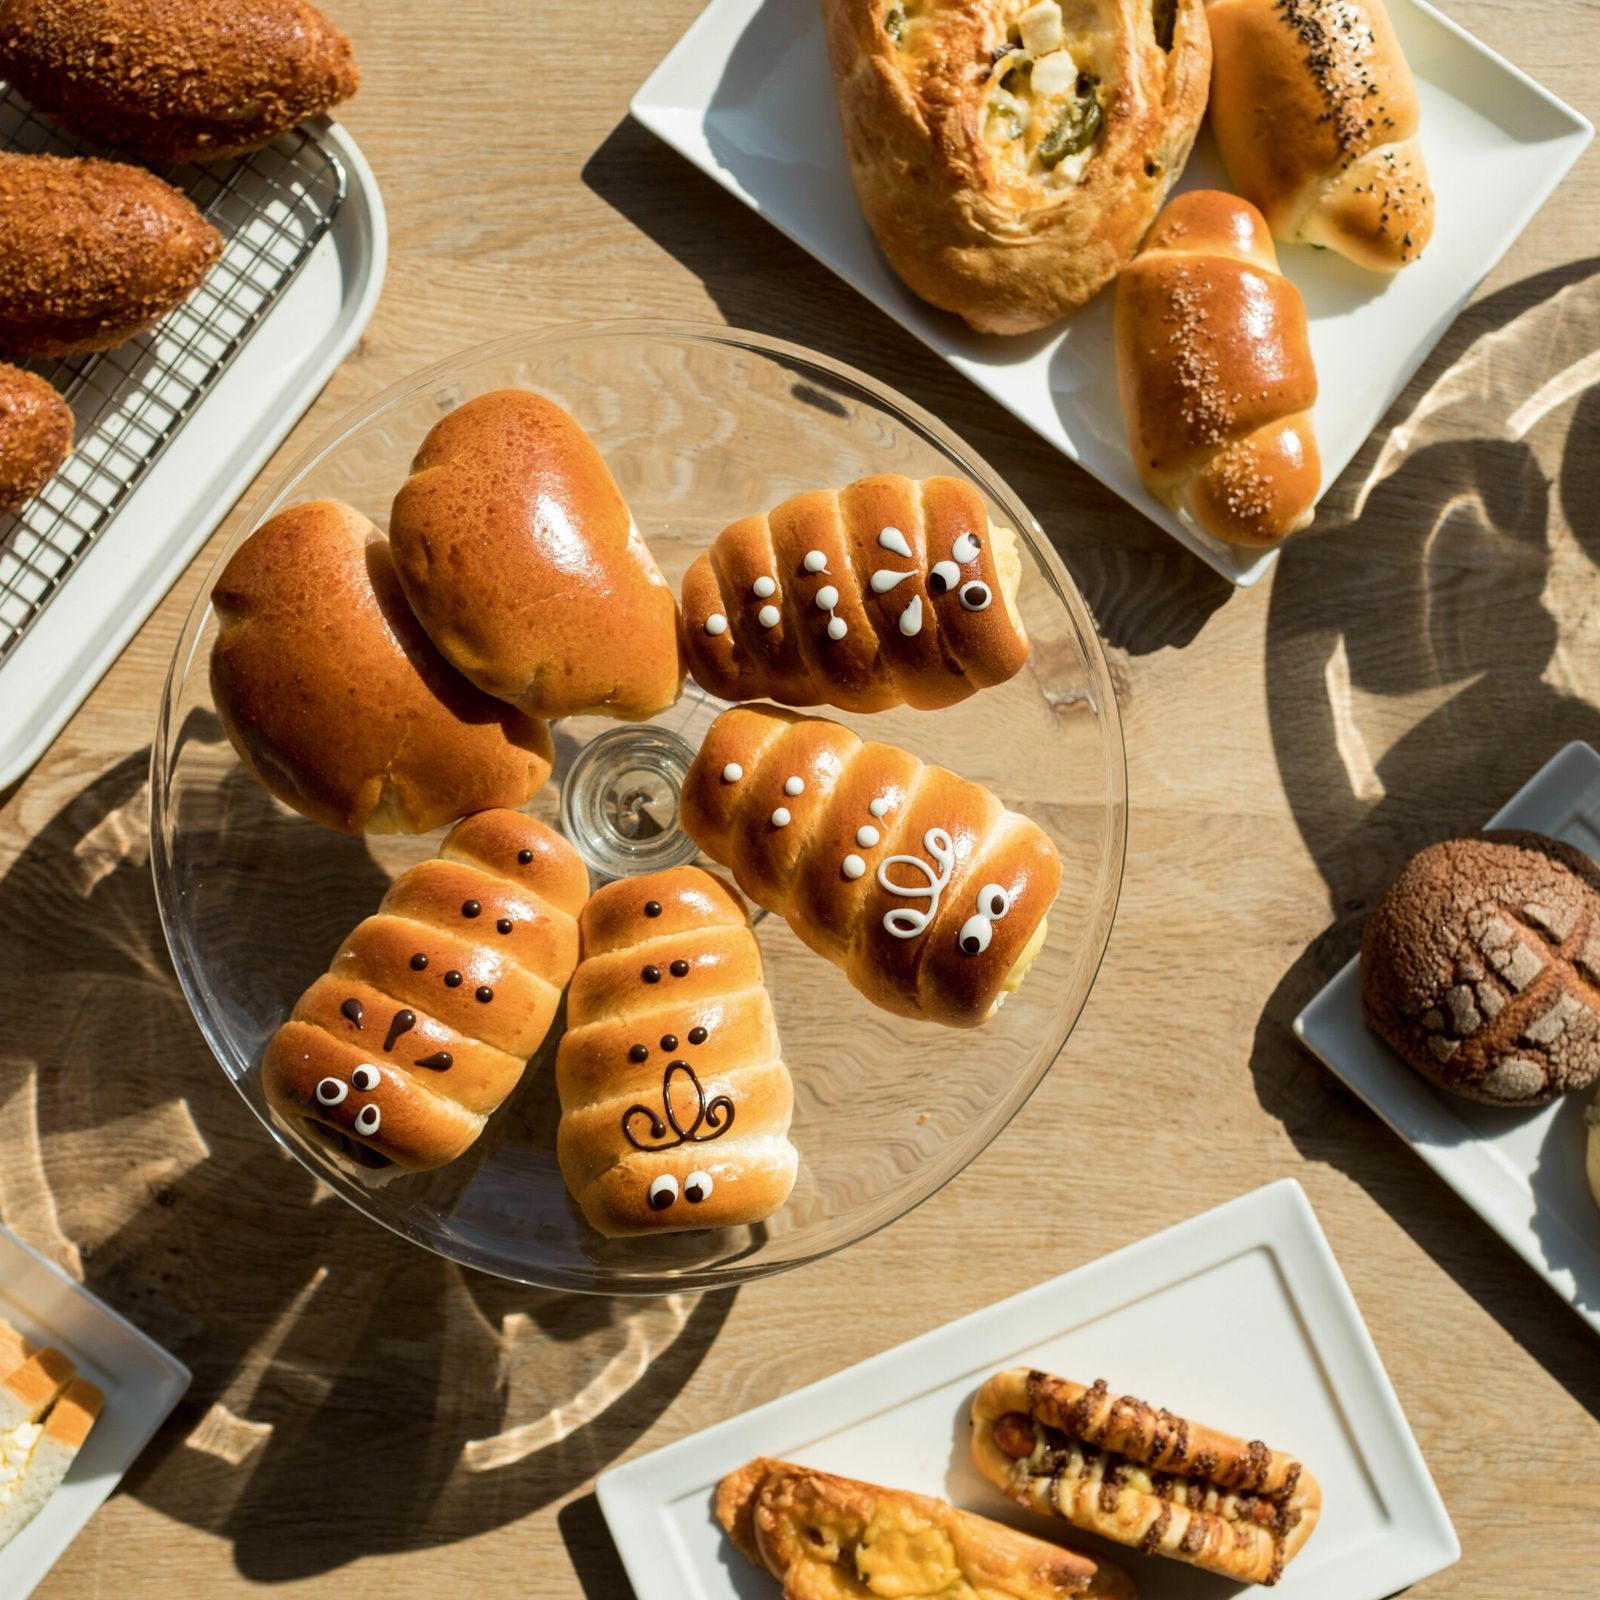 In the suburb of Beaverton, Oyatsupan was Portland's first dedicated Japanese bakery when it opened in ...